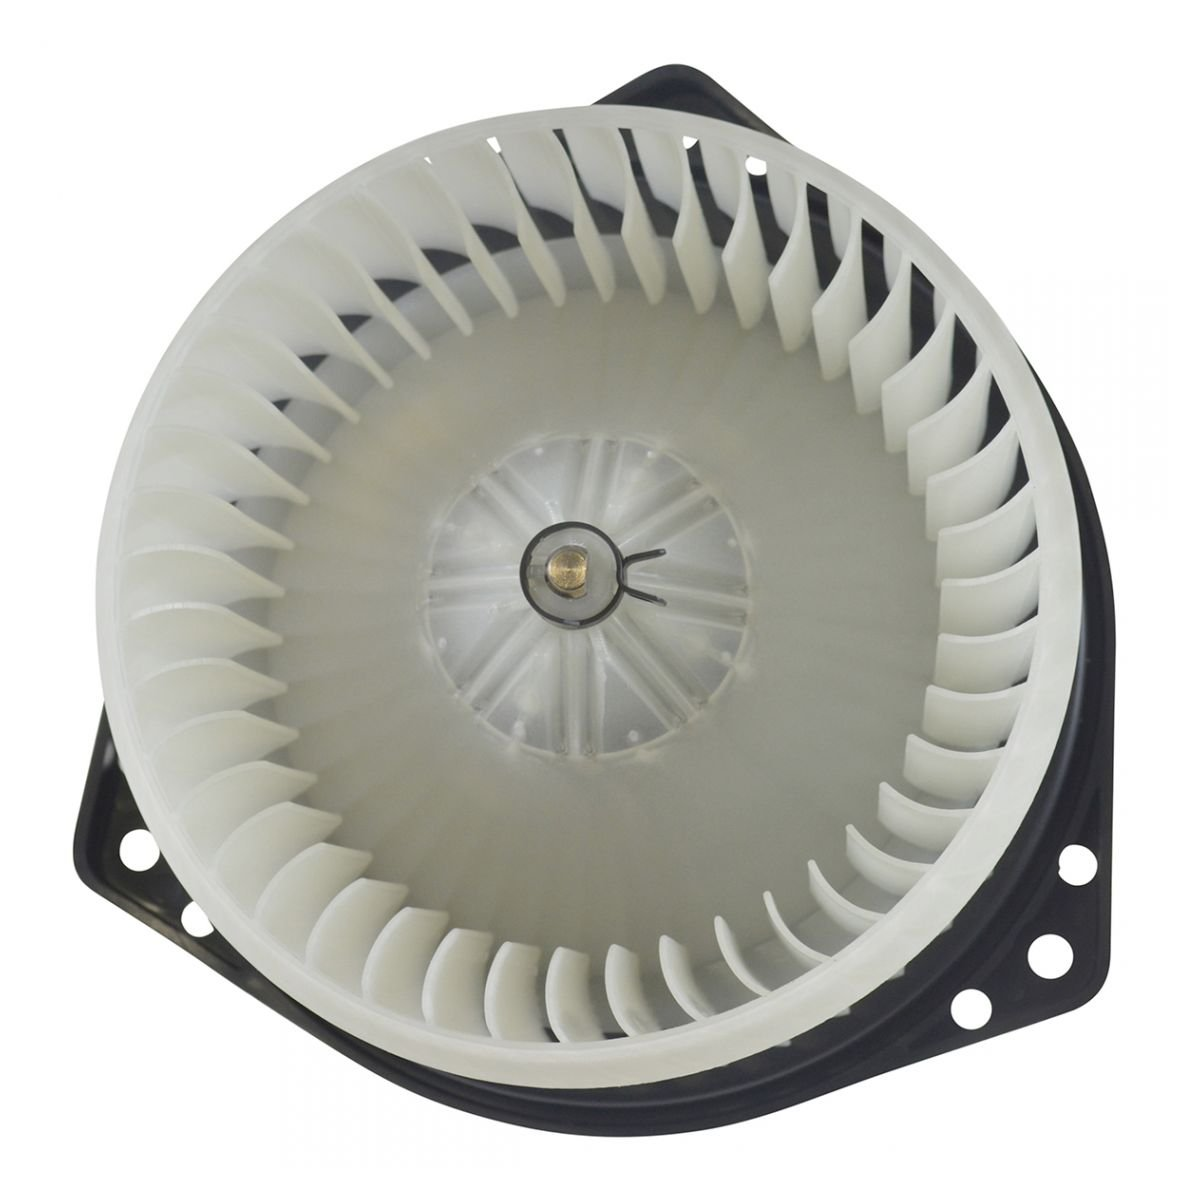 Heater Blower Motor w/Fan Cage for Nissan Maxima Pathfinder Infiniti QX4 G20 I30